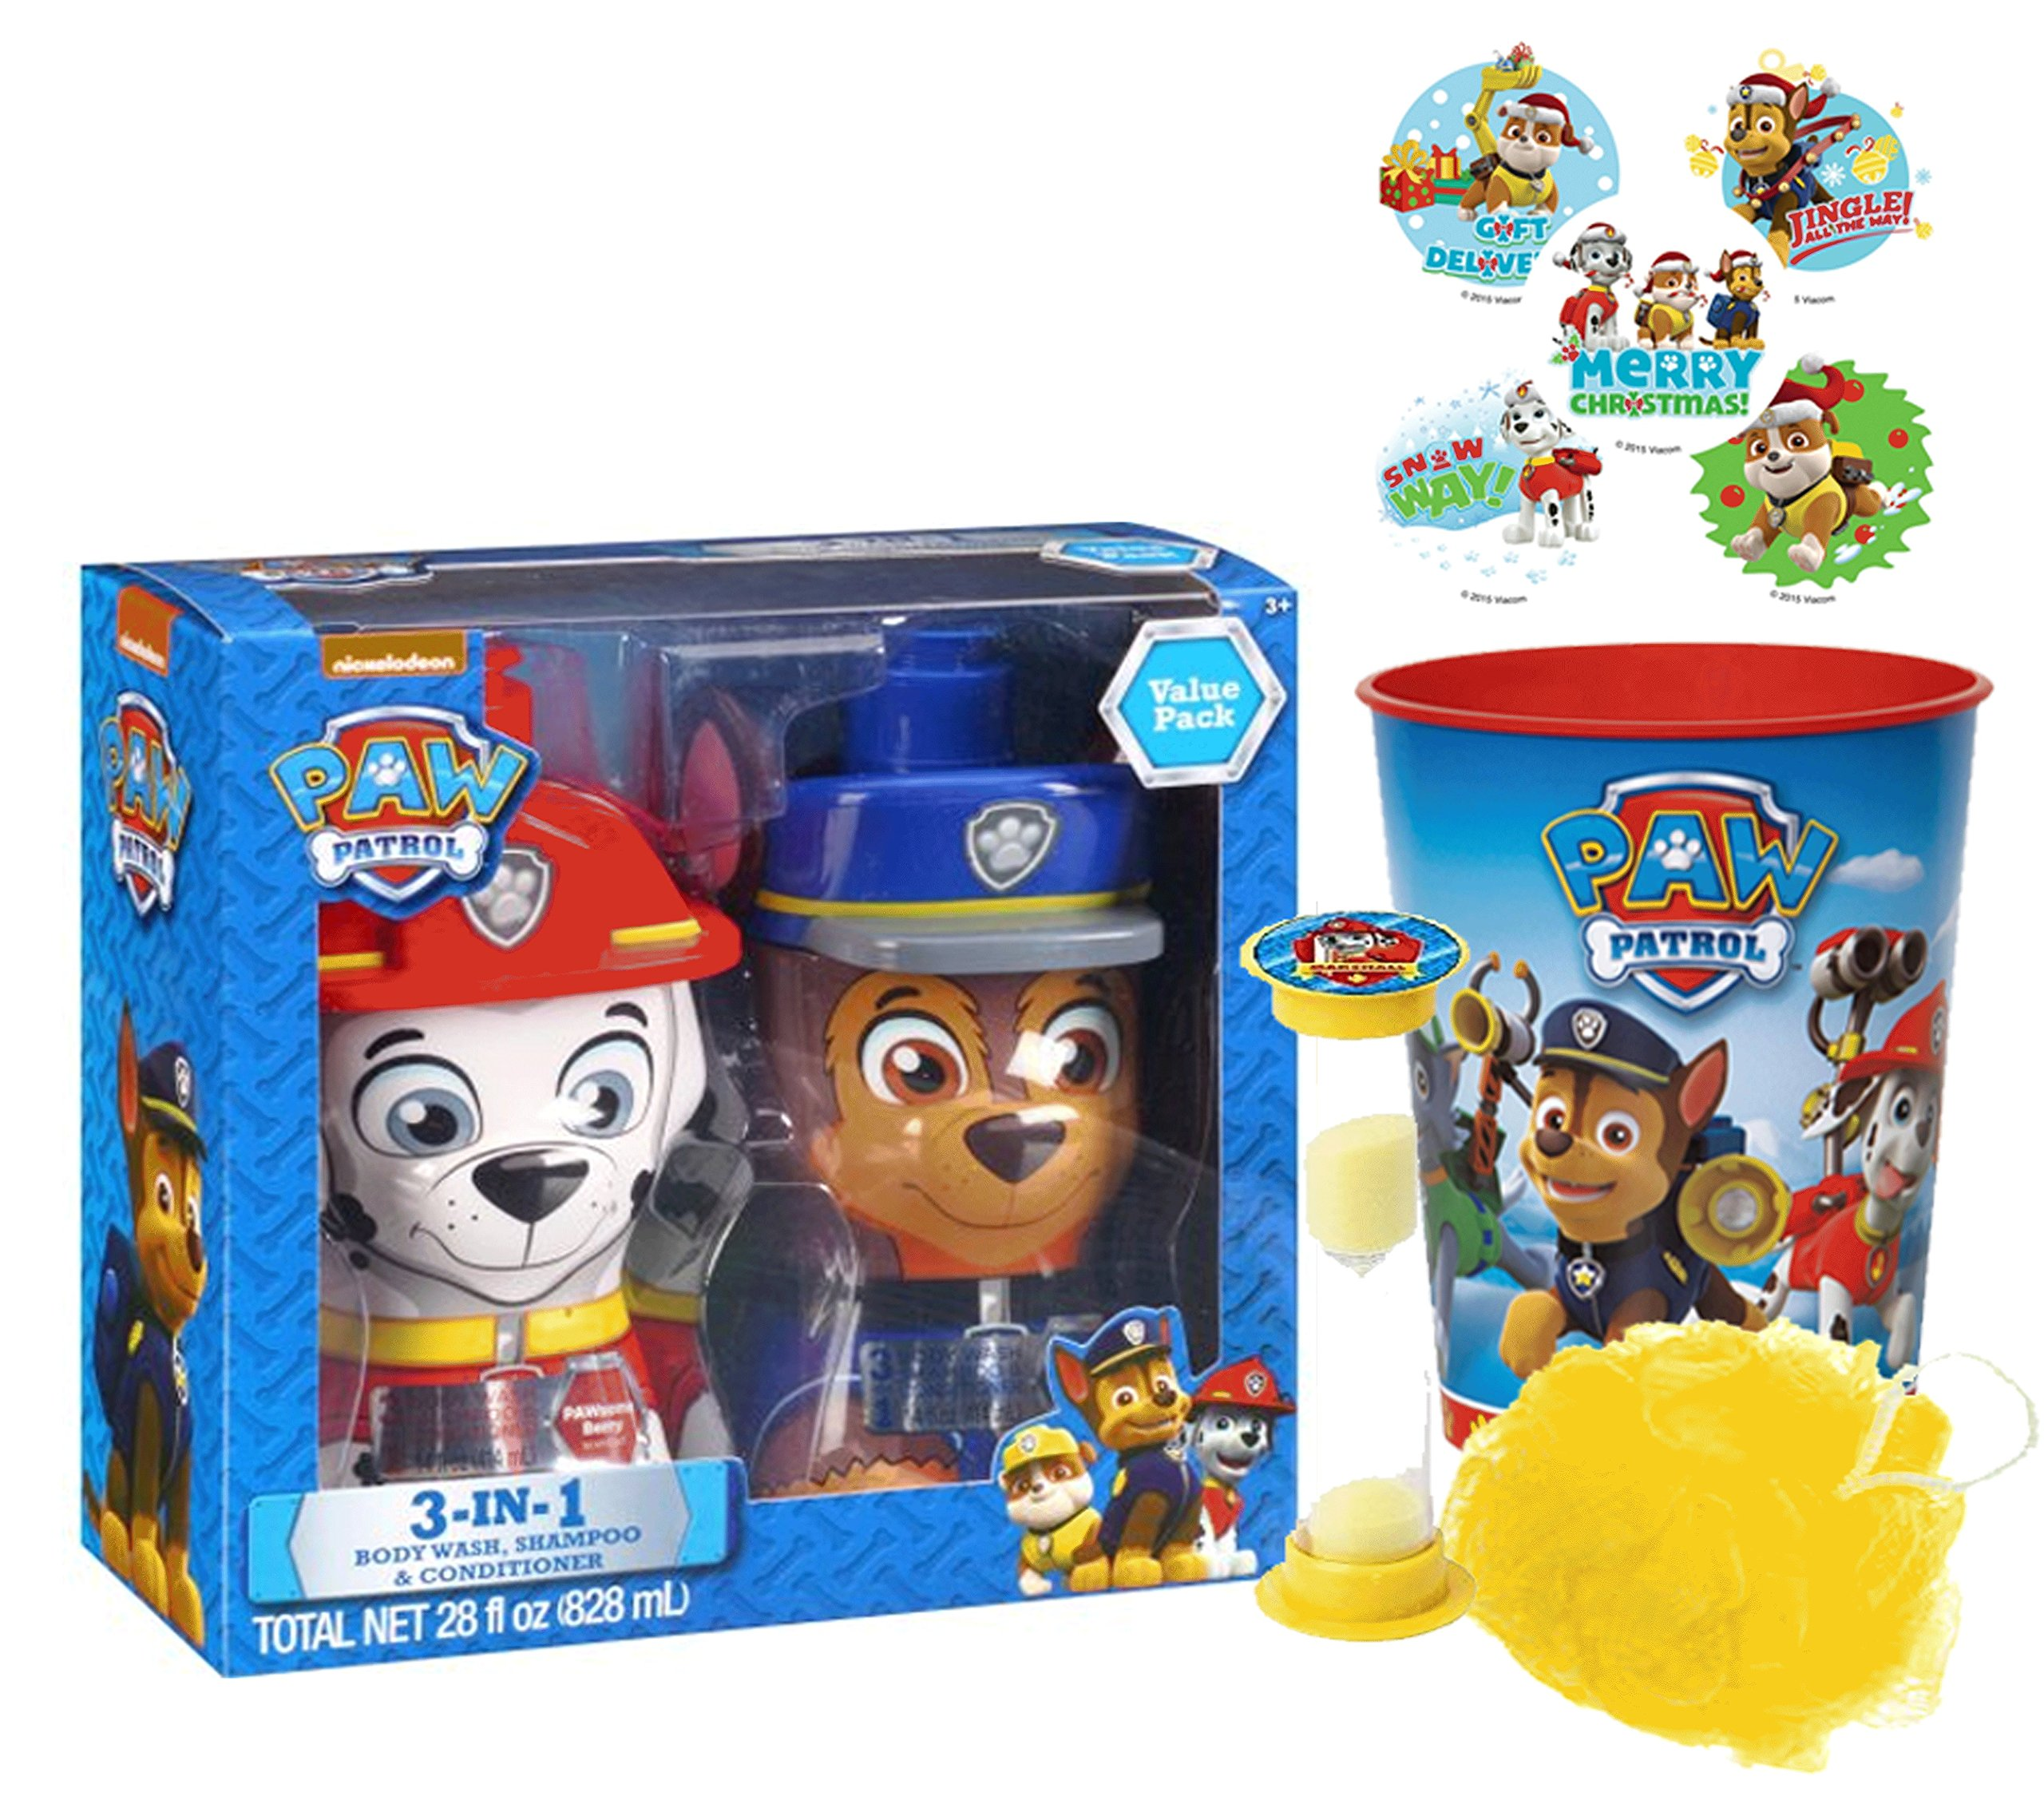 Paw Patrol 5pc Bath Time Gift Set! Includes 3-in-1 Body Wash, Shampoo & Conditioner, Bath Scrubby, Rinse Cup & ''Time To Get Out'' Bath Timer! Plus Bonus Paw Patrol Stocking Stuffer Holiday Stickers!